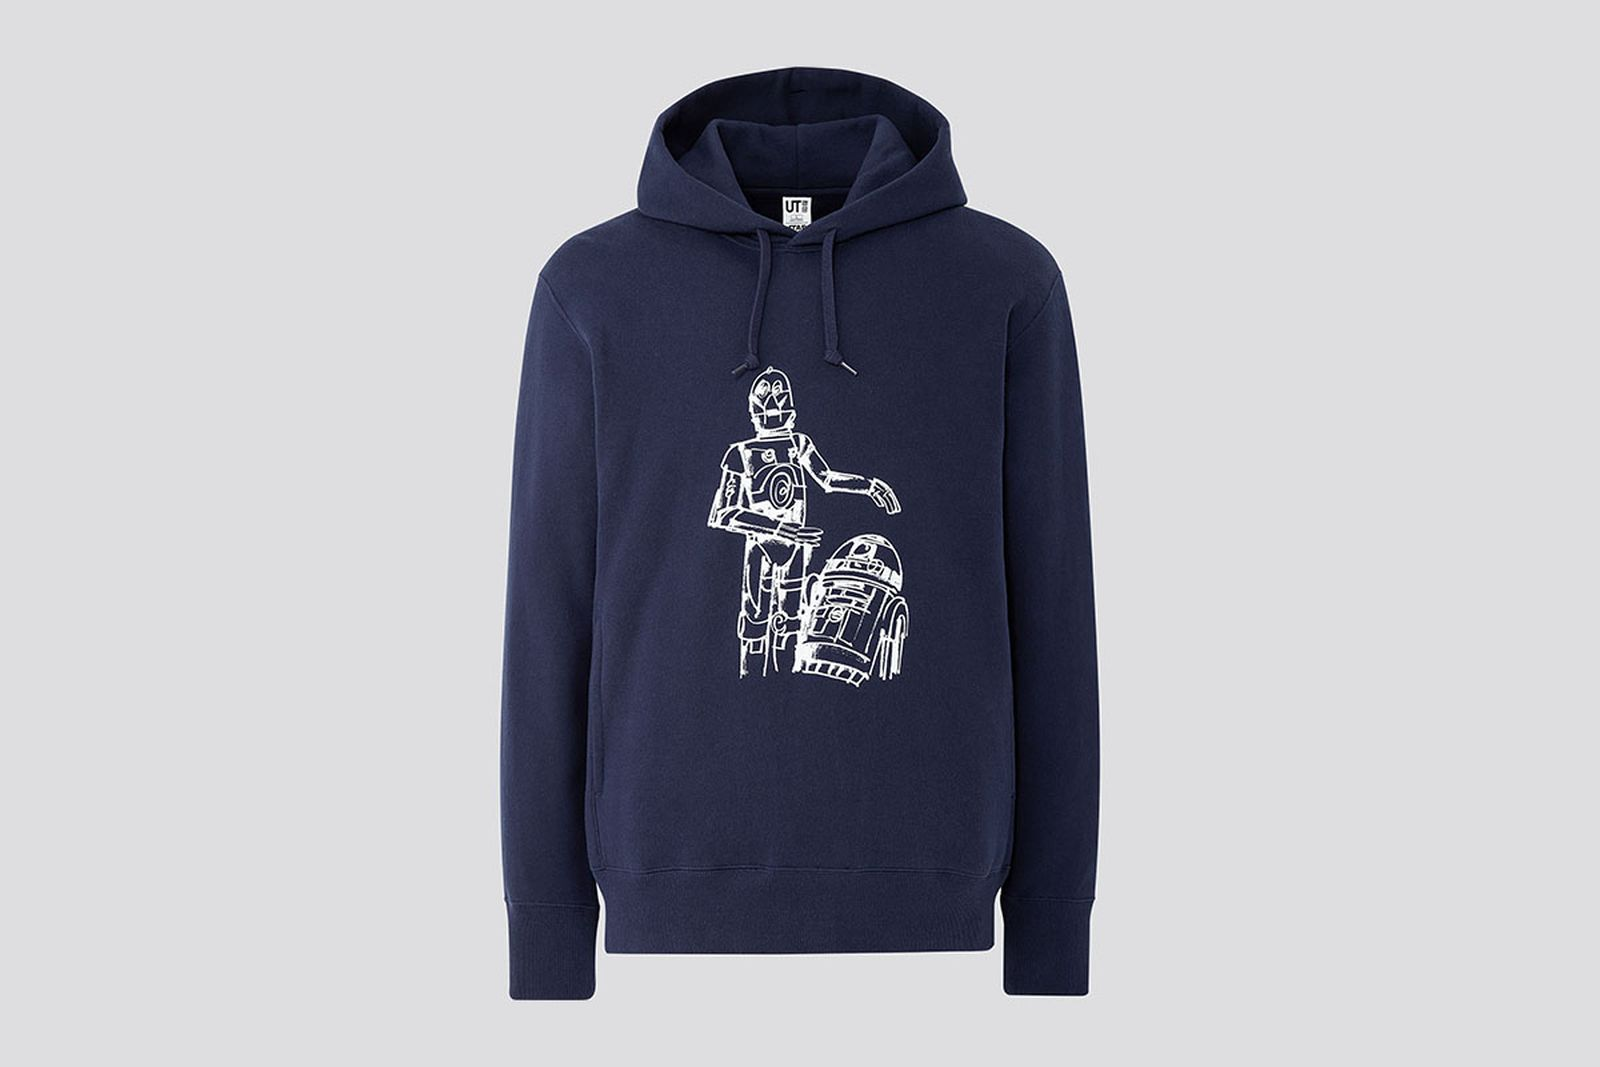 uniqlo-ut-star-wars-collection-10